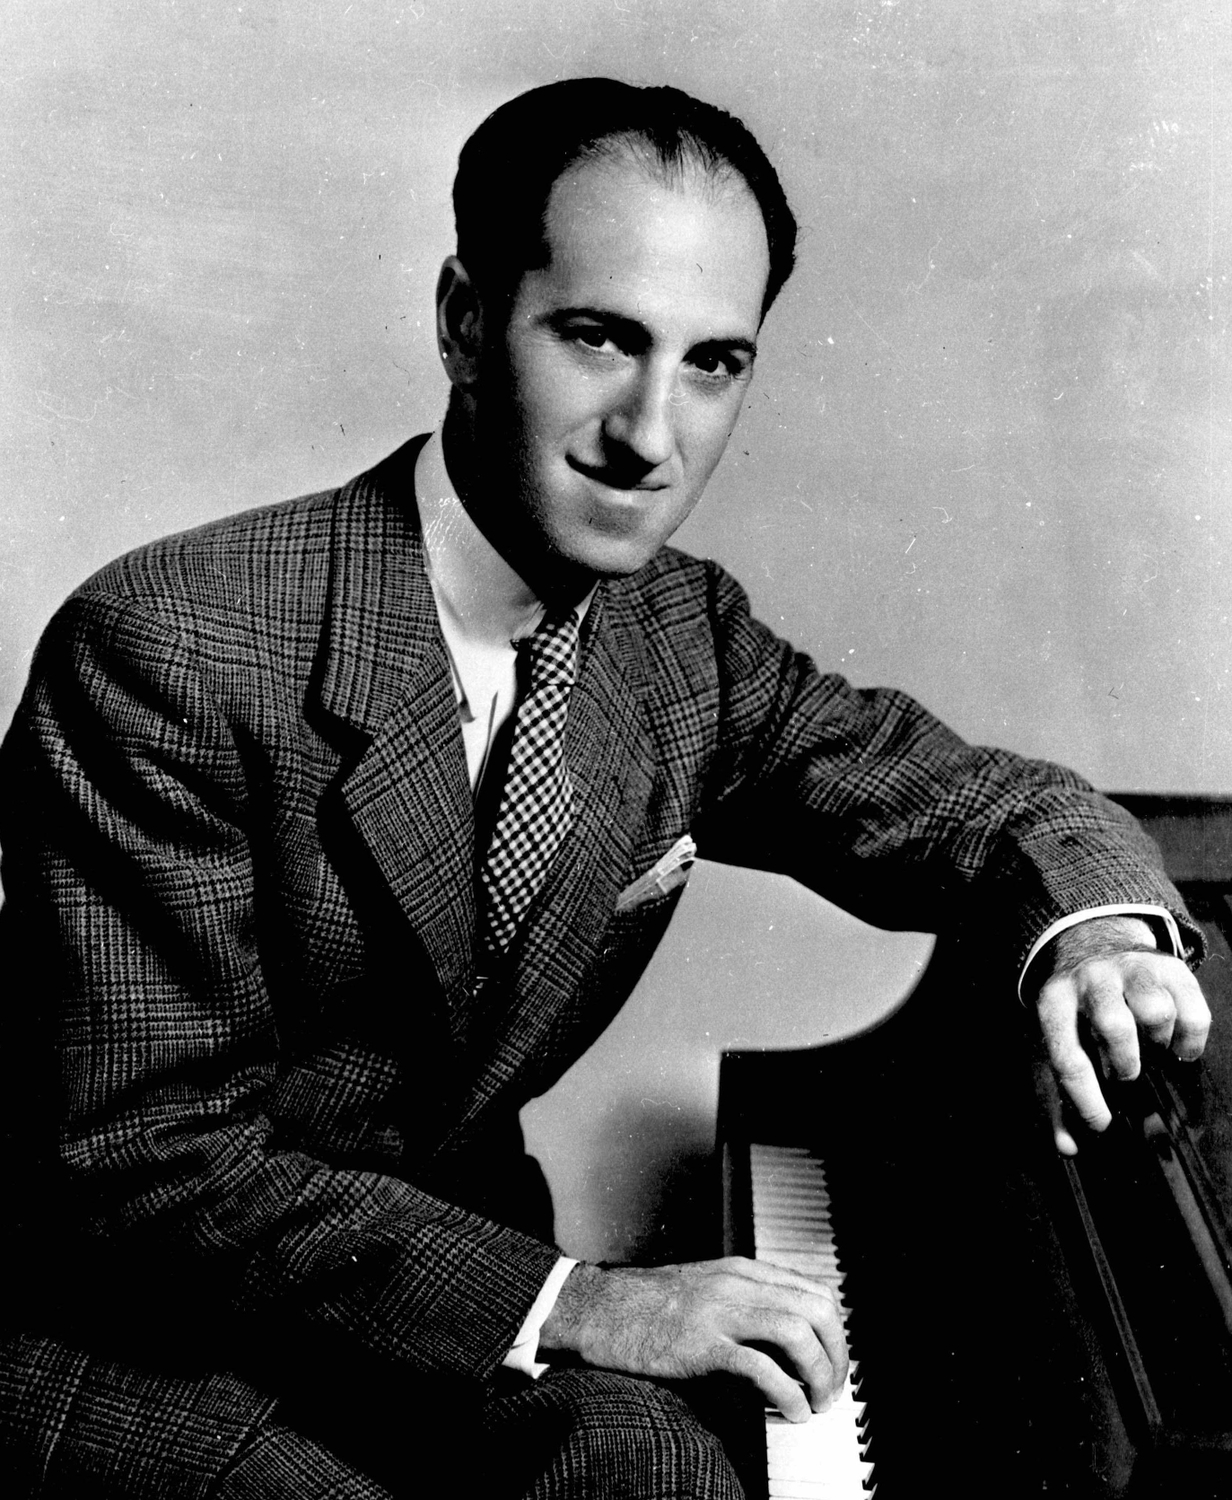 Caption: George Gershwin, Credit: George Gershwin